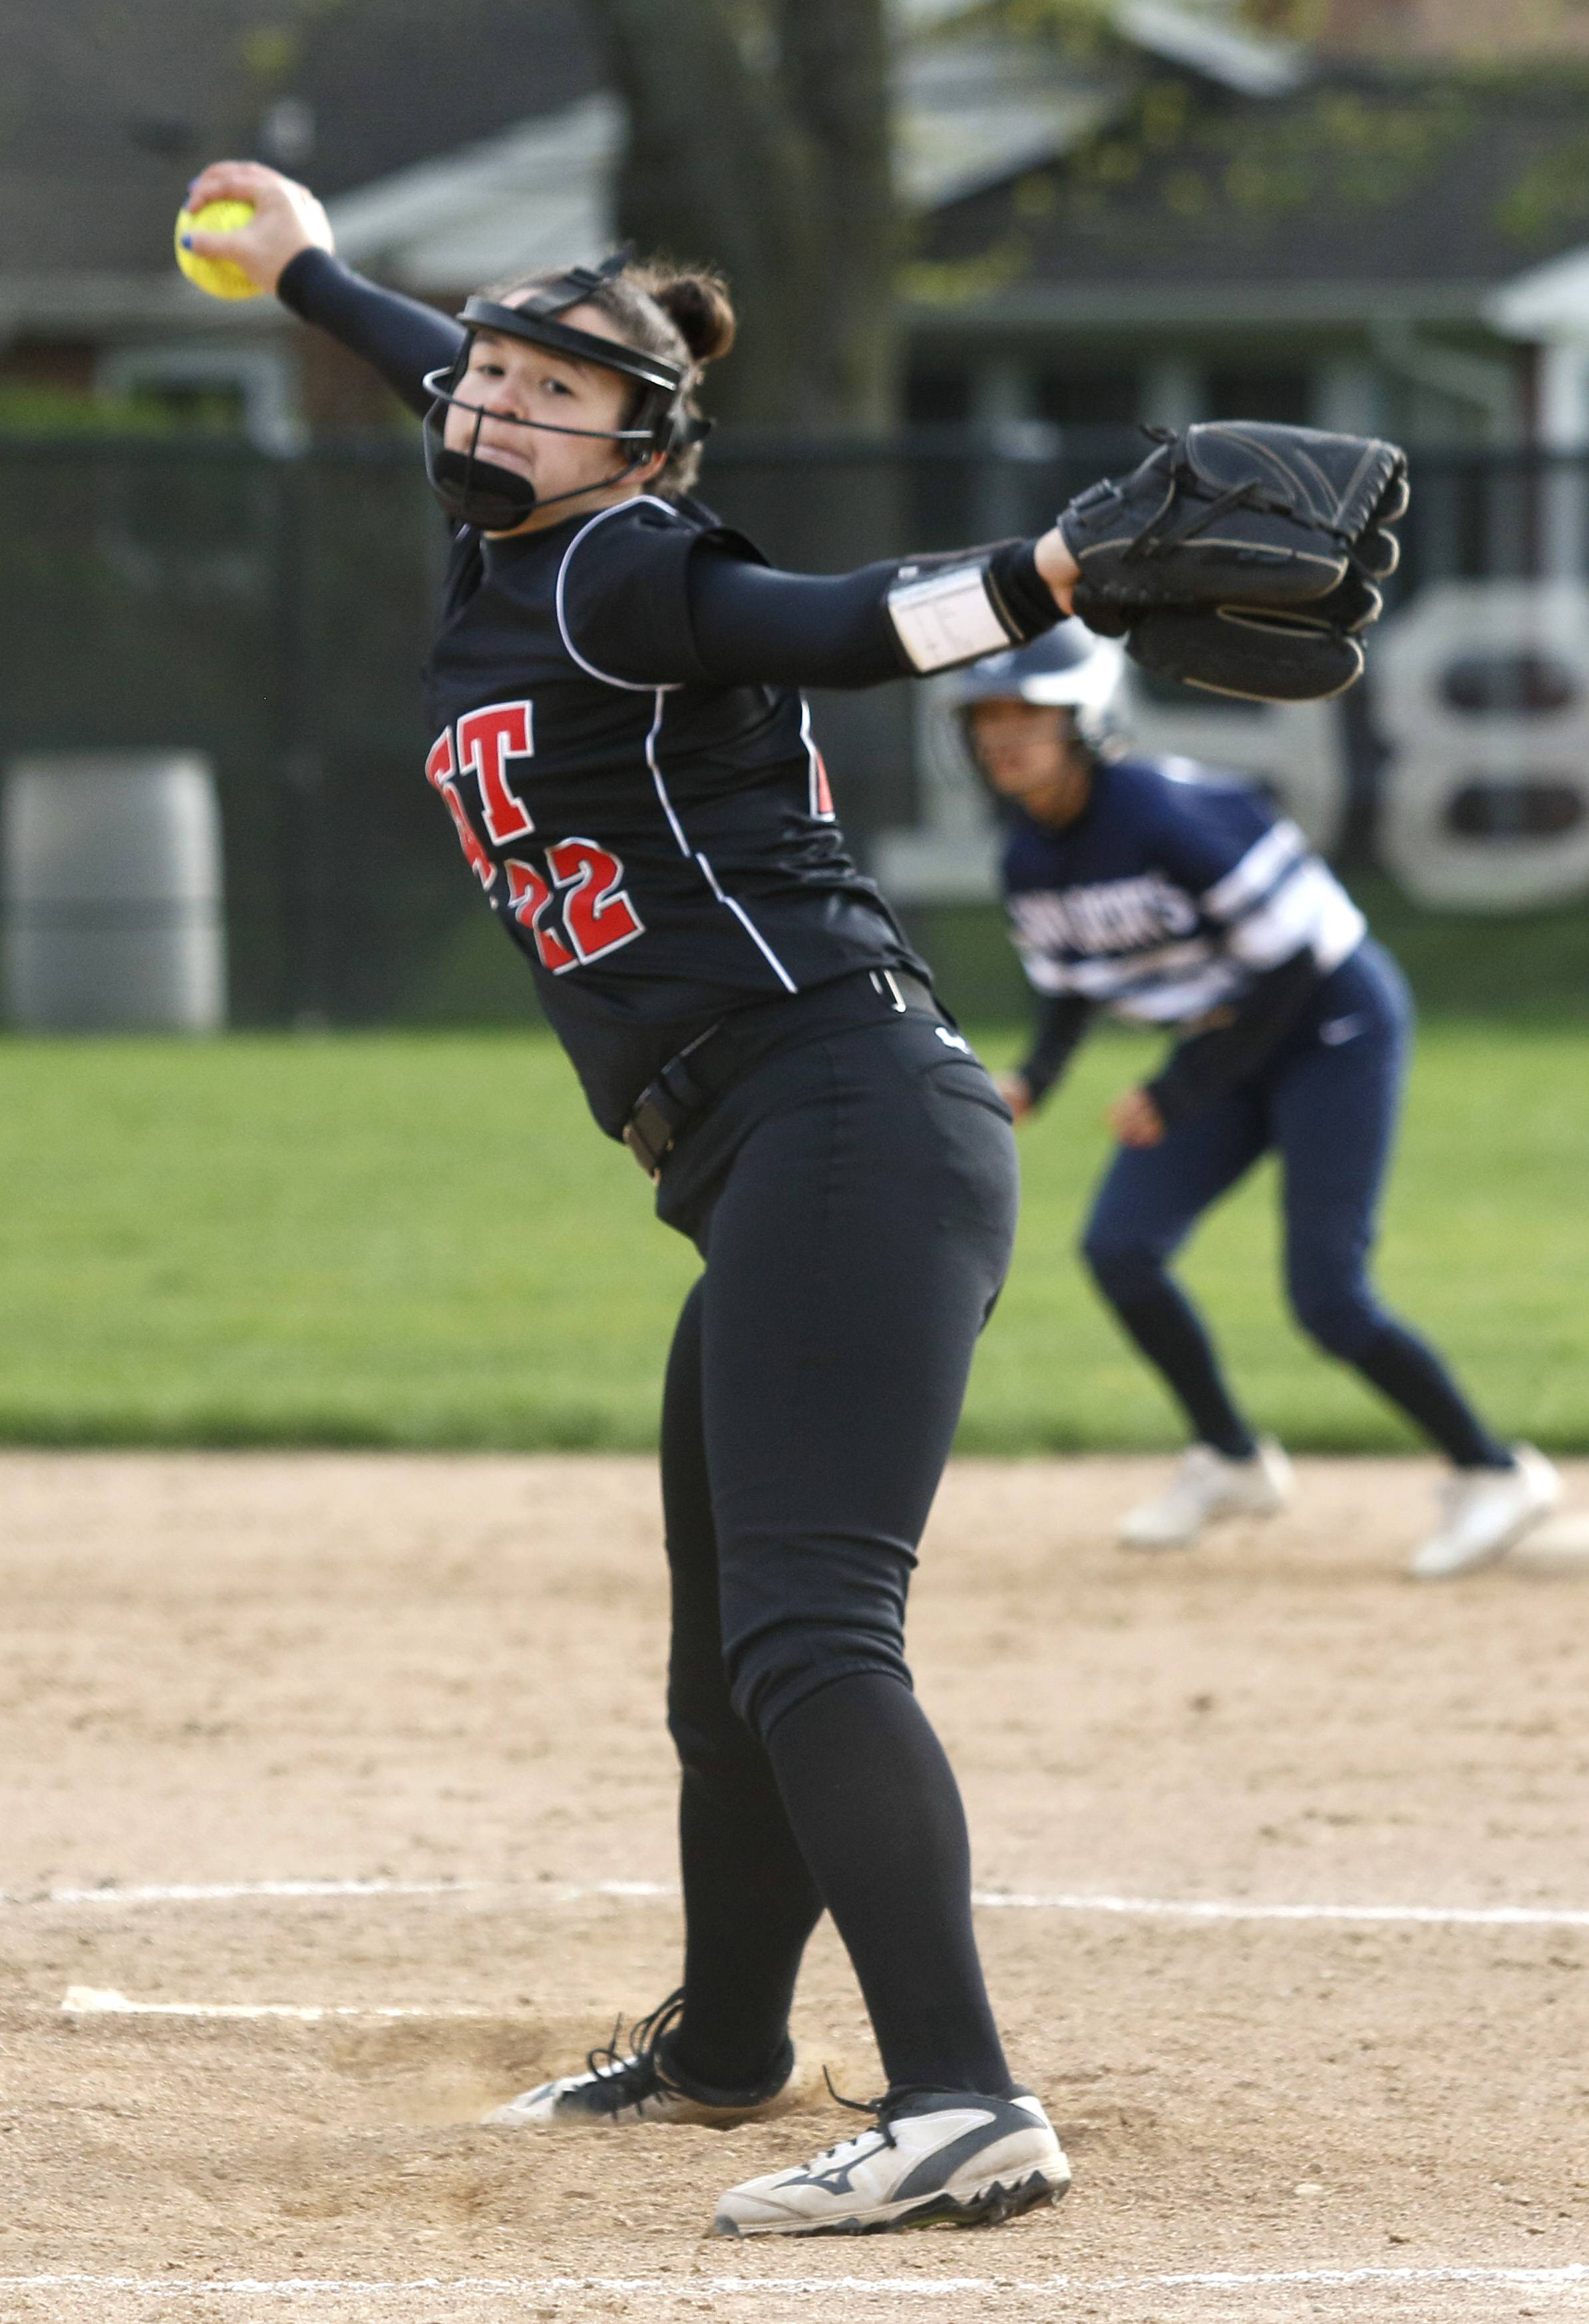 Glenbard East's Tori Tyler delivers a pitch against West Chicago during girls softball action in Lombard.